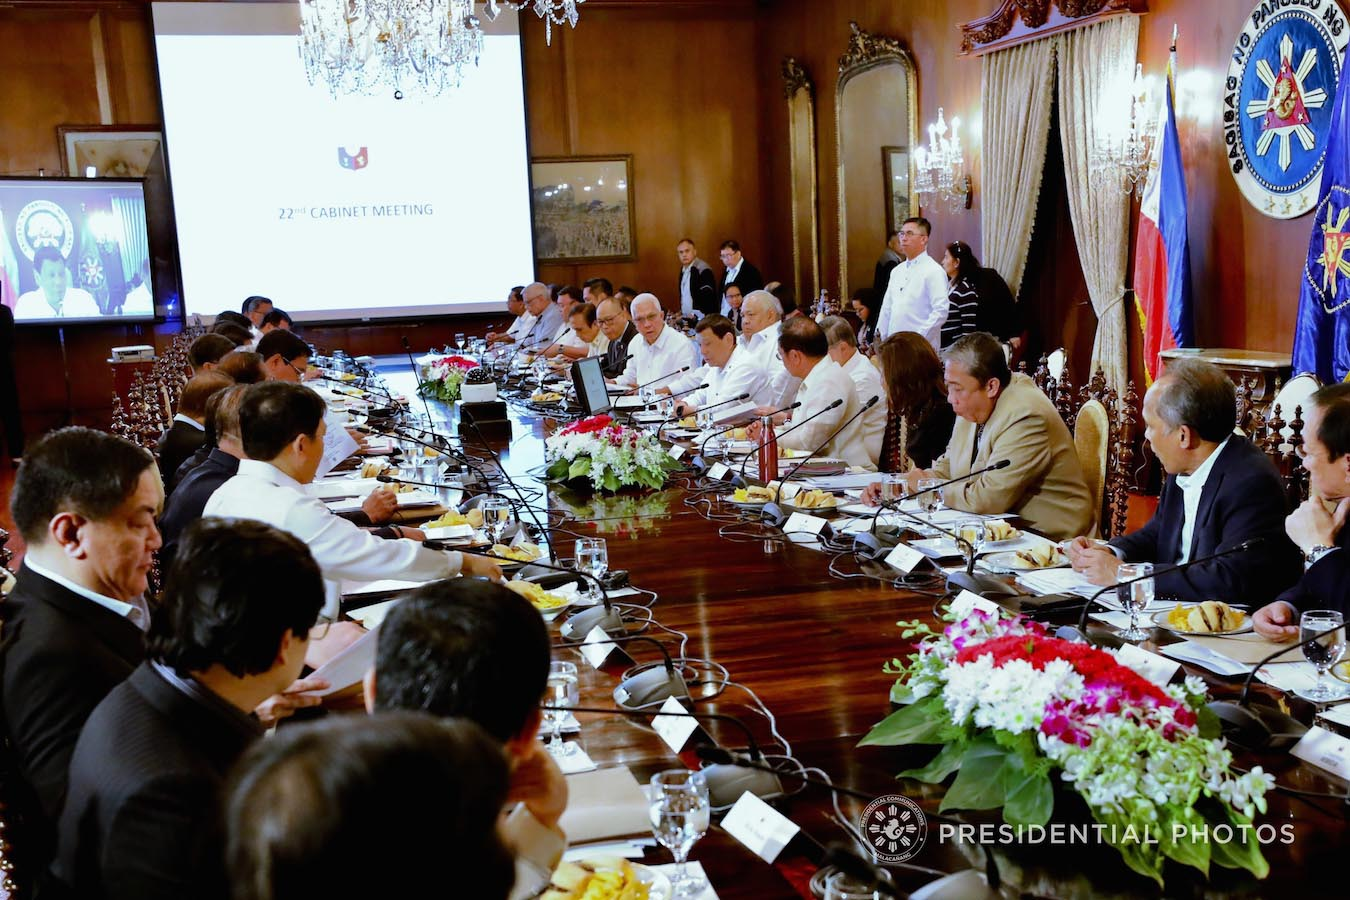 President Rodrigo Roa Duterte presides over the 22nd Cabinet Meeting at the Malacañan Palace on February 5, 2018. RICHARD MADELO/PRESIDENTIAL PHOTO